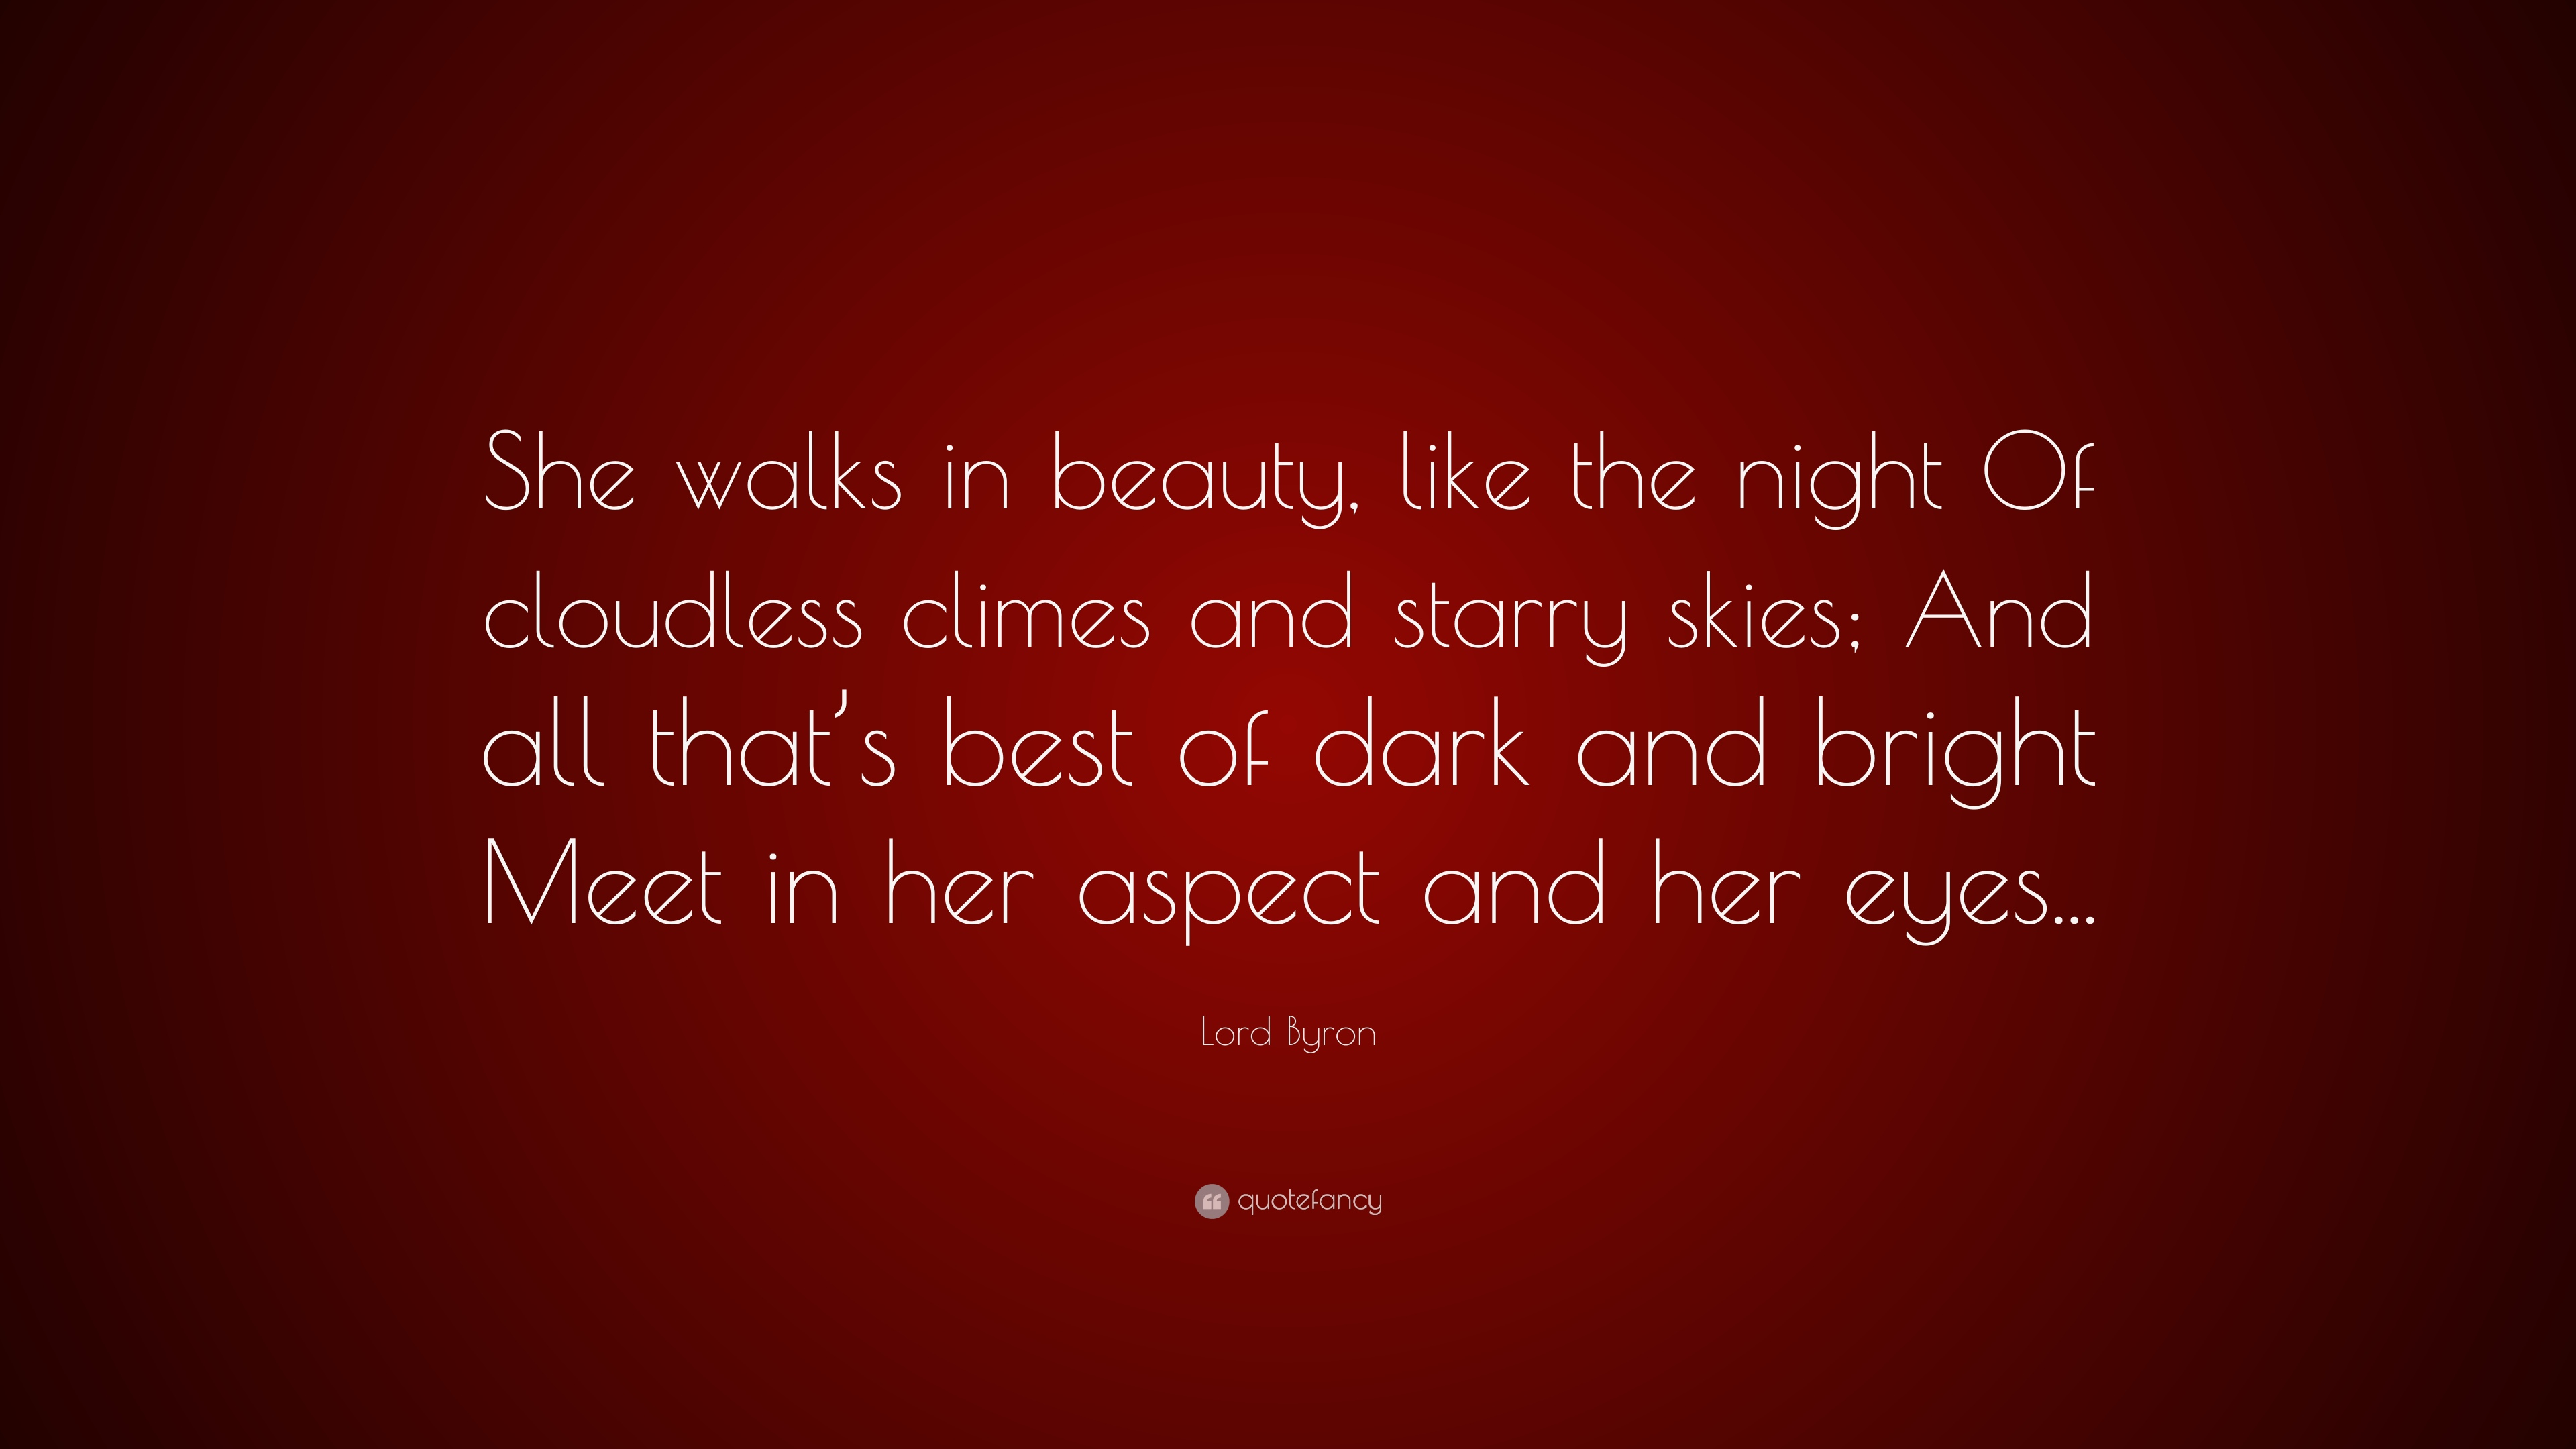 Inspiring Relationship Quotes Wallpaper Lord Byron Quote She Walks In Beauty Like The Night Of